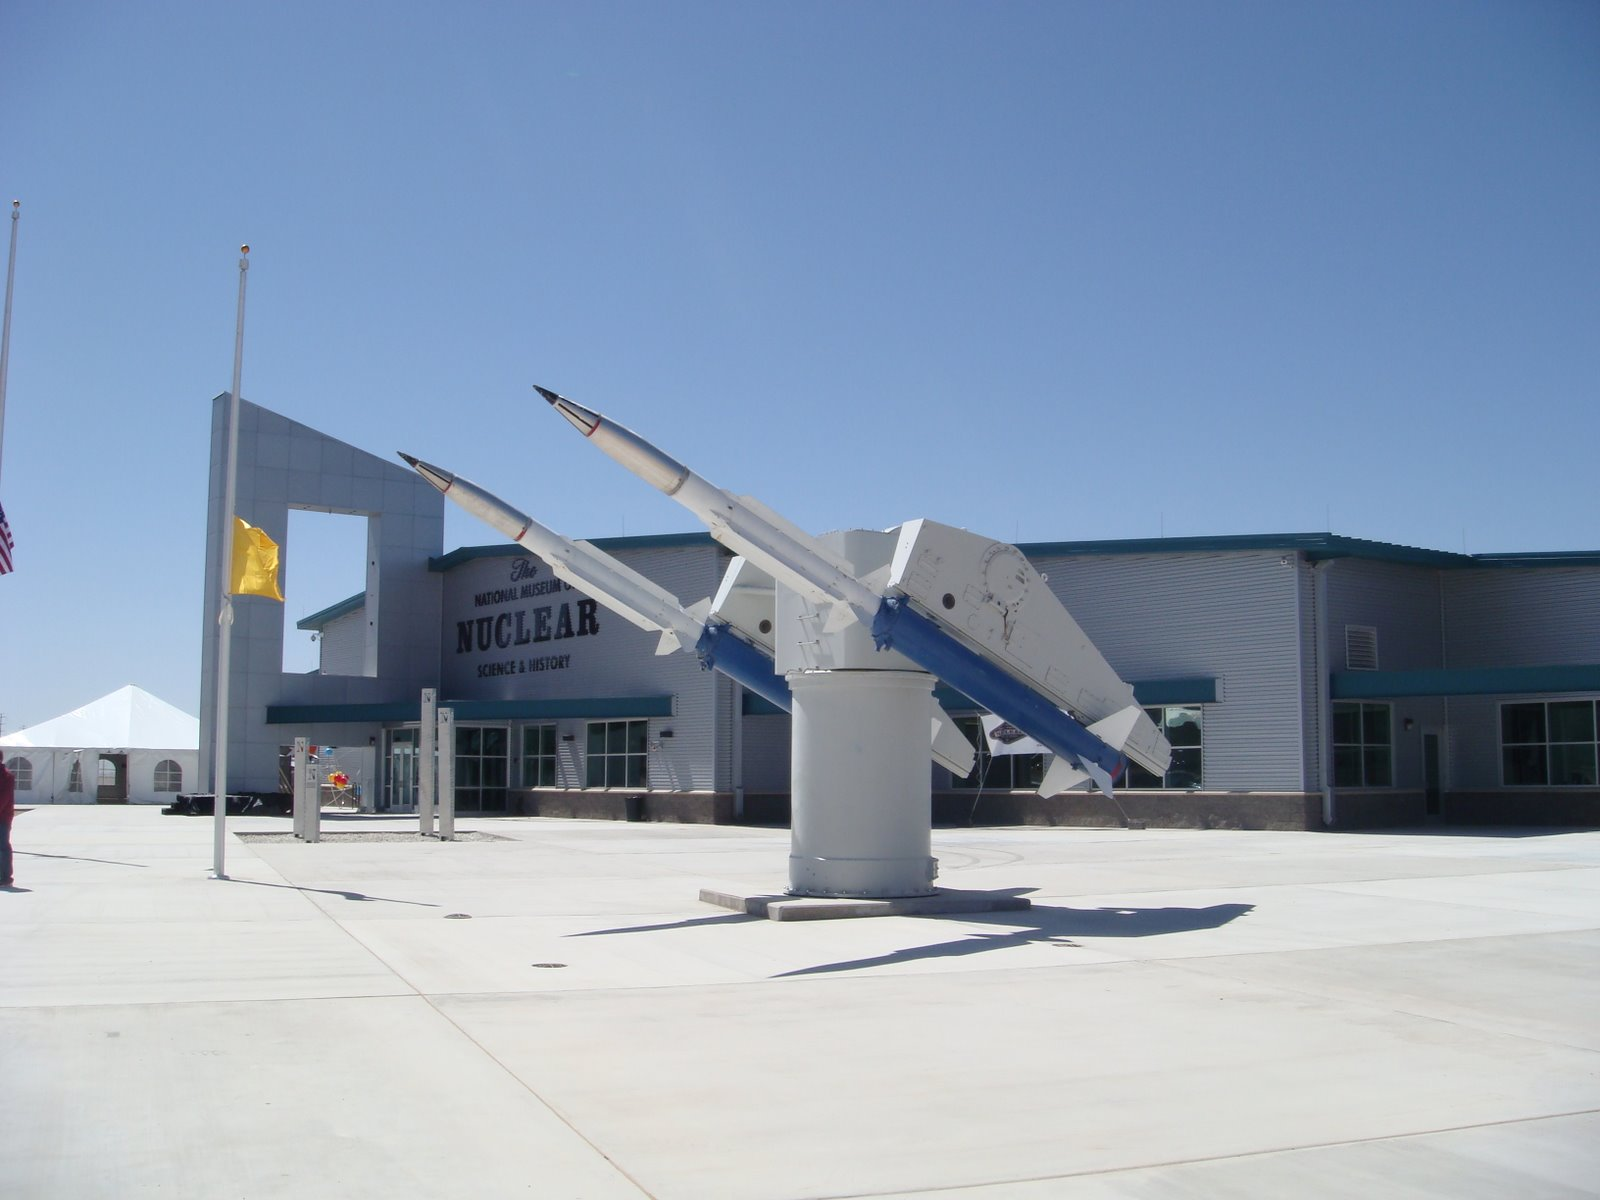 Missiles_in_front_of_the_National_Museum_of_Nuclear_Science_&_History